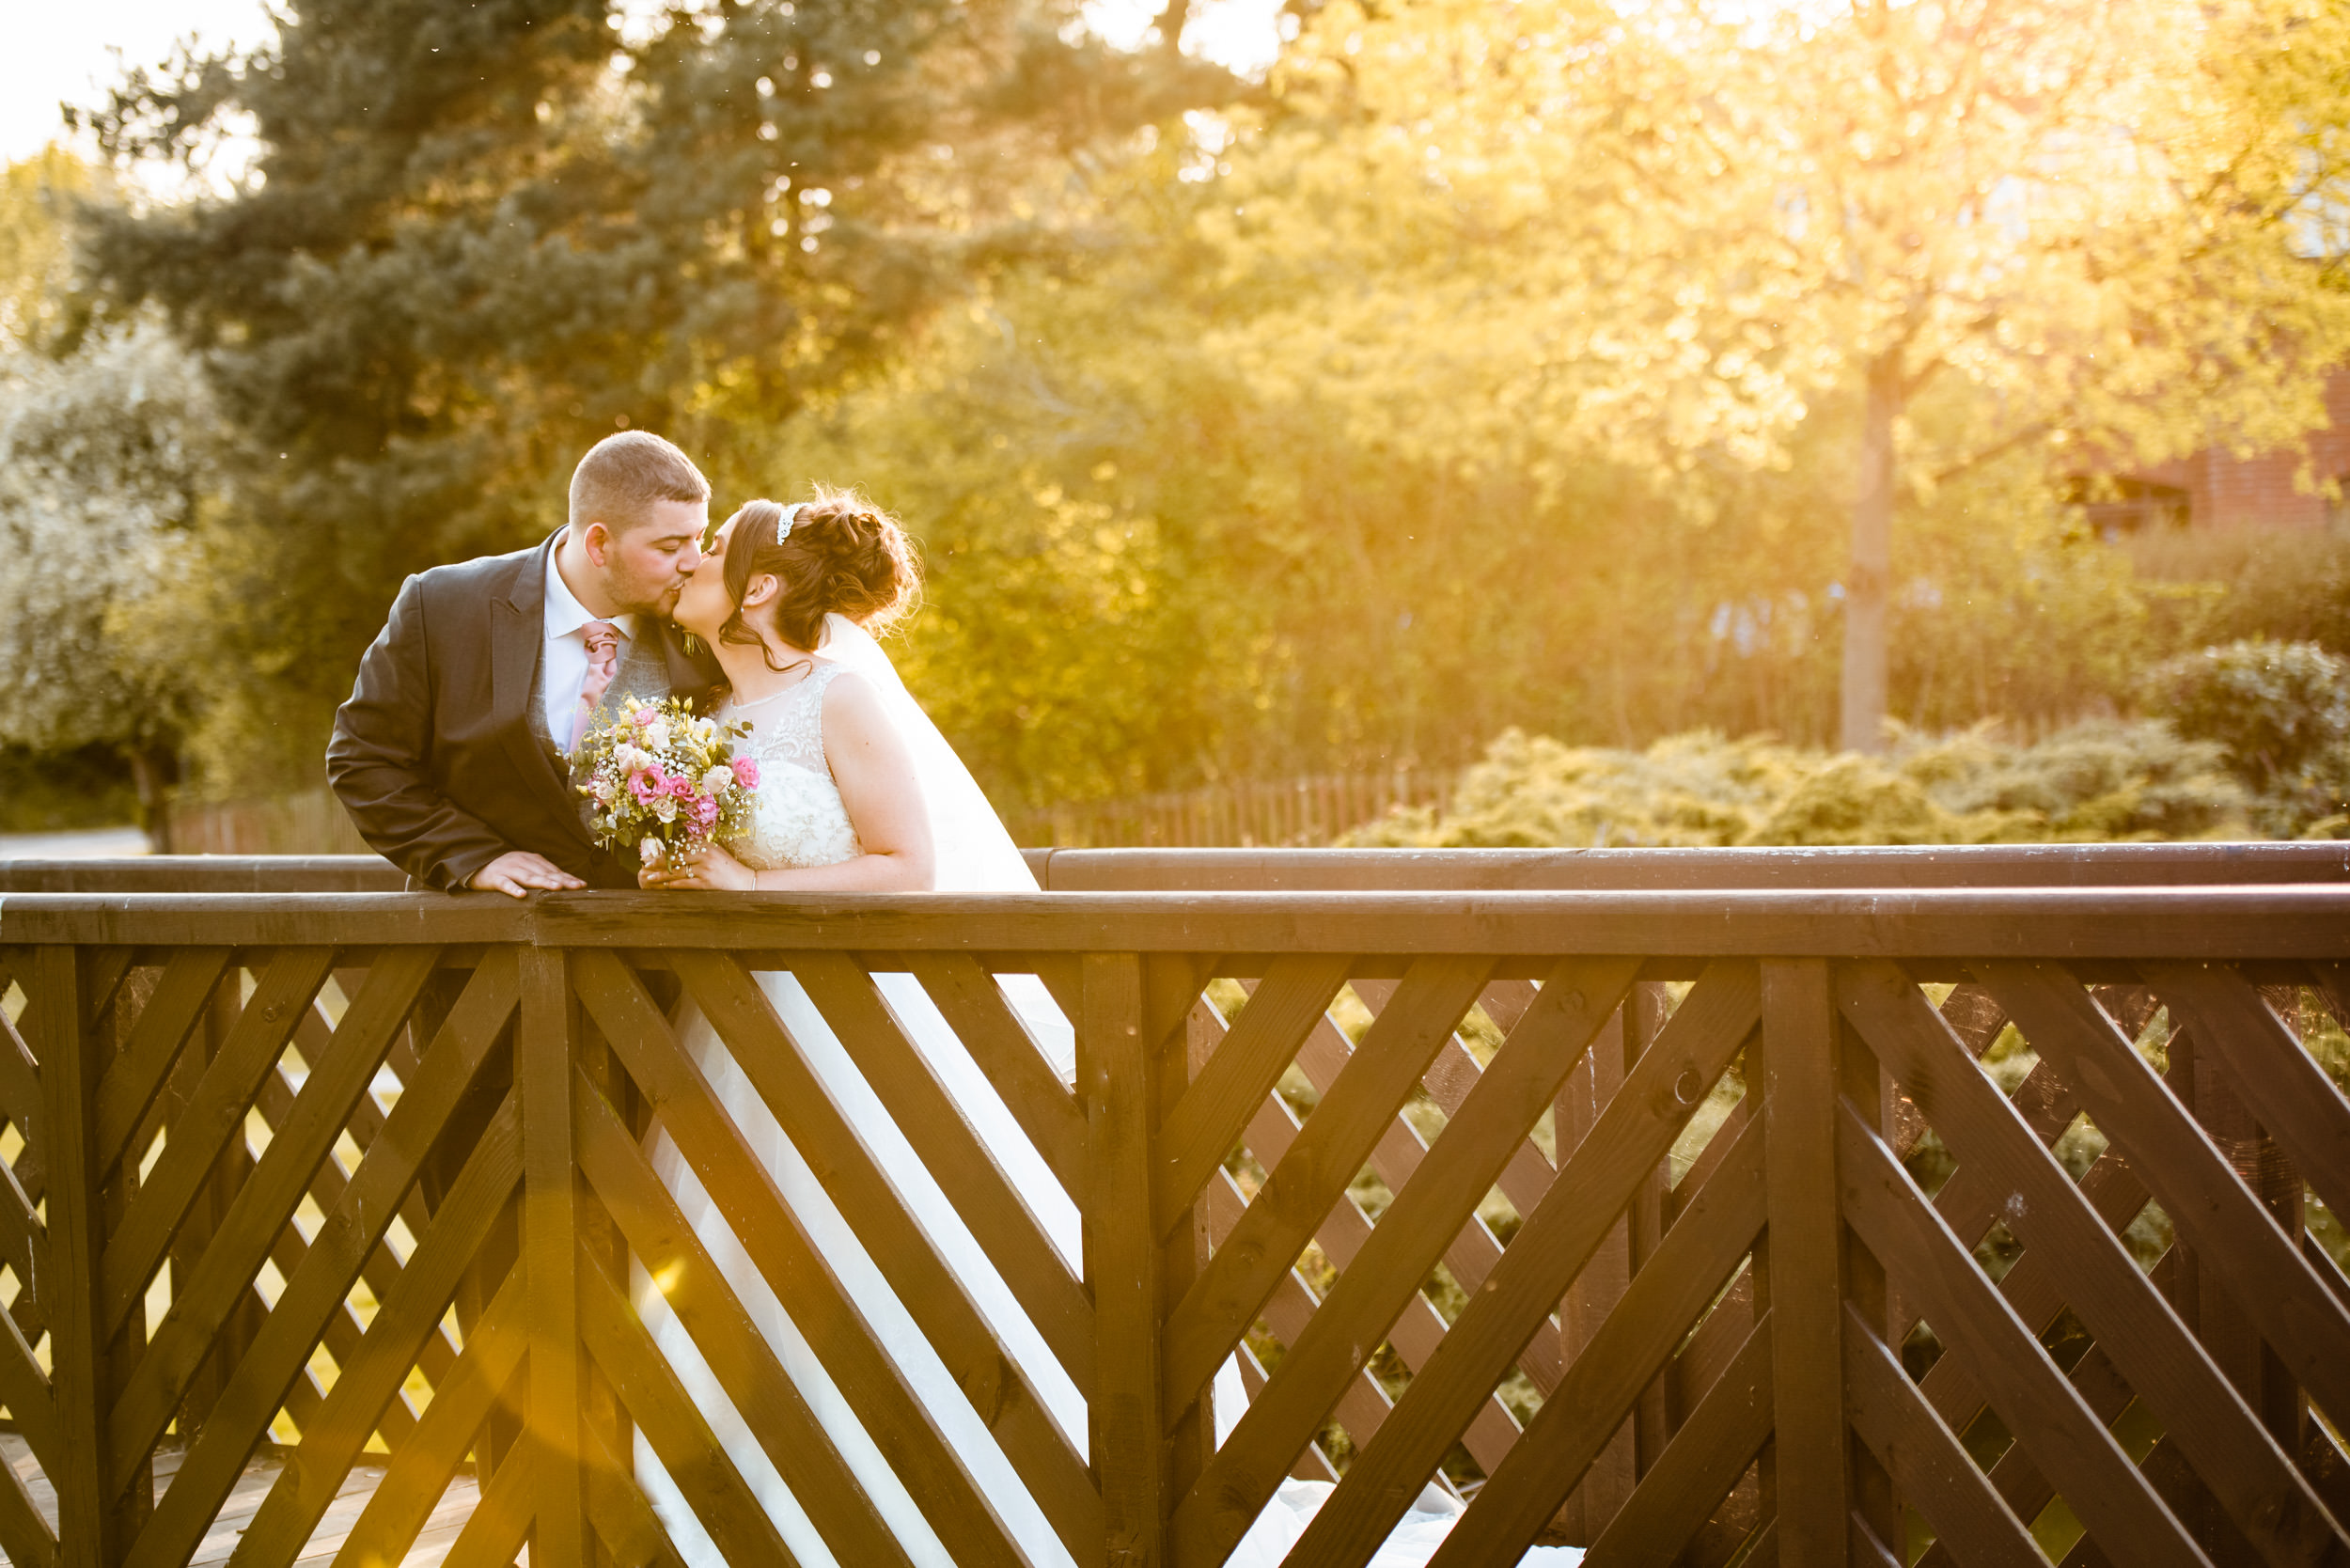 Bride and groom kissing on a wooden bridge in golden hour light